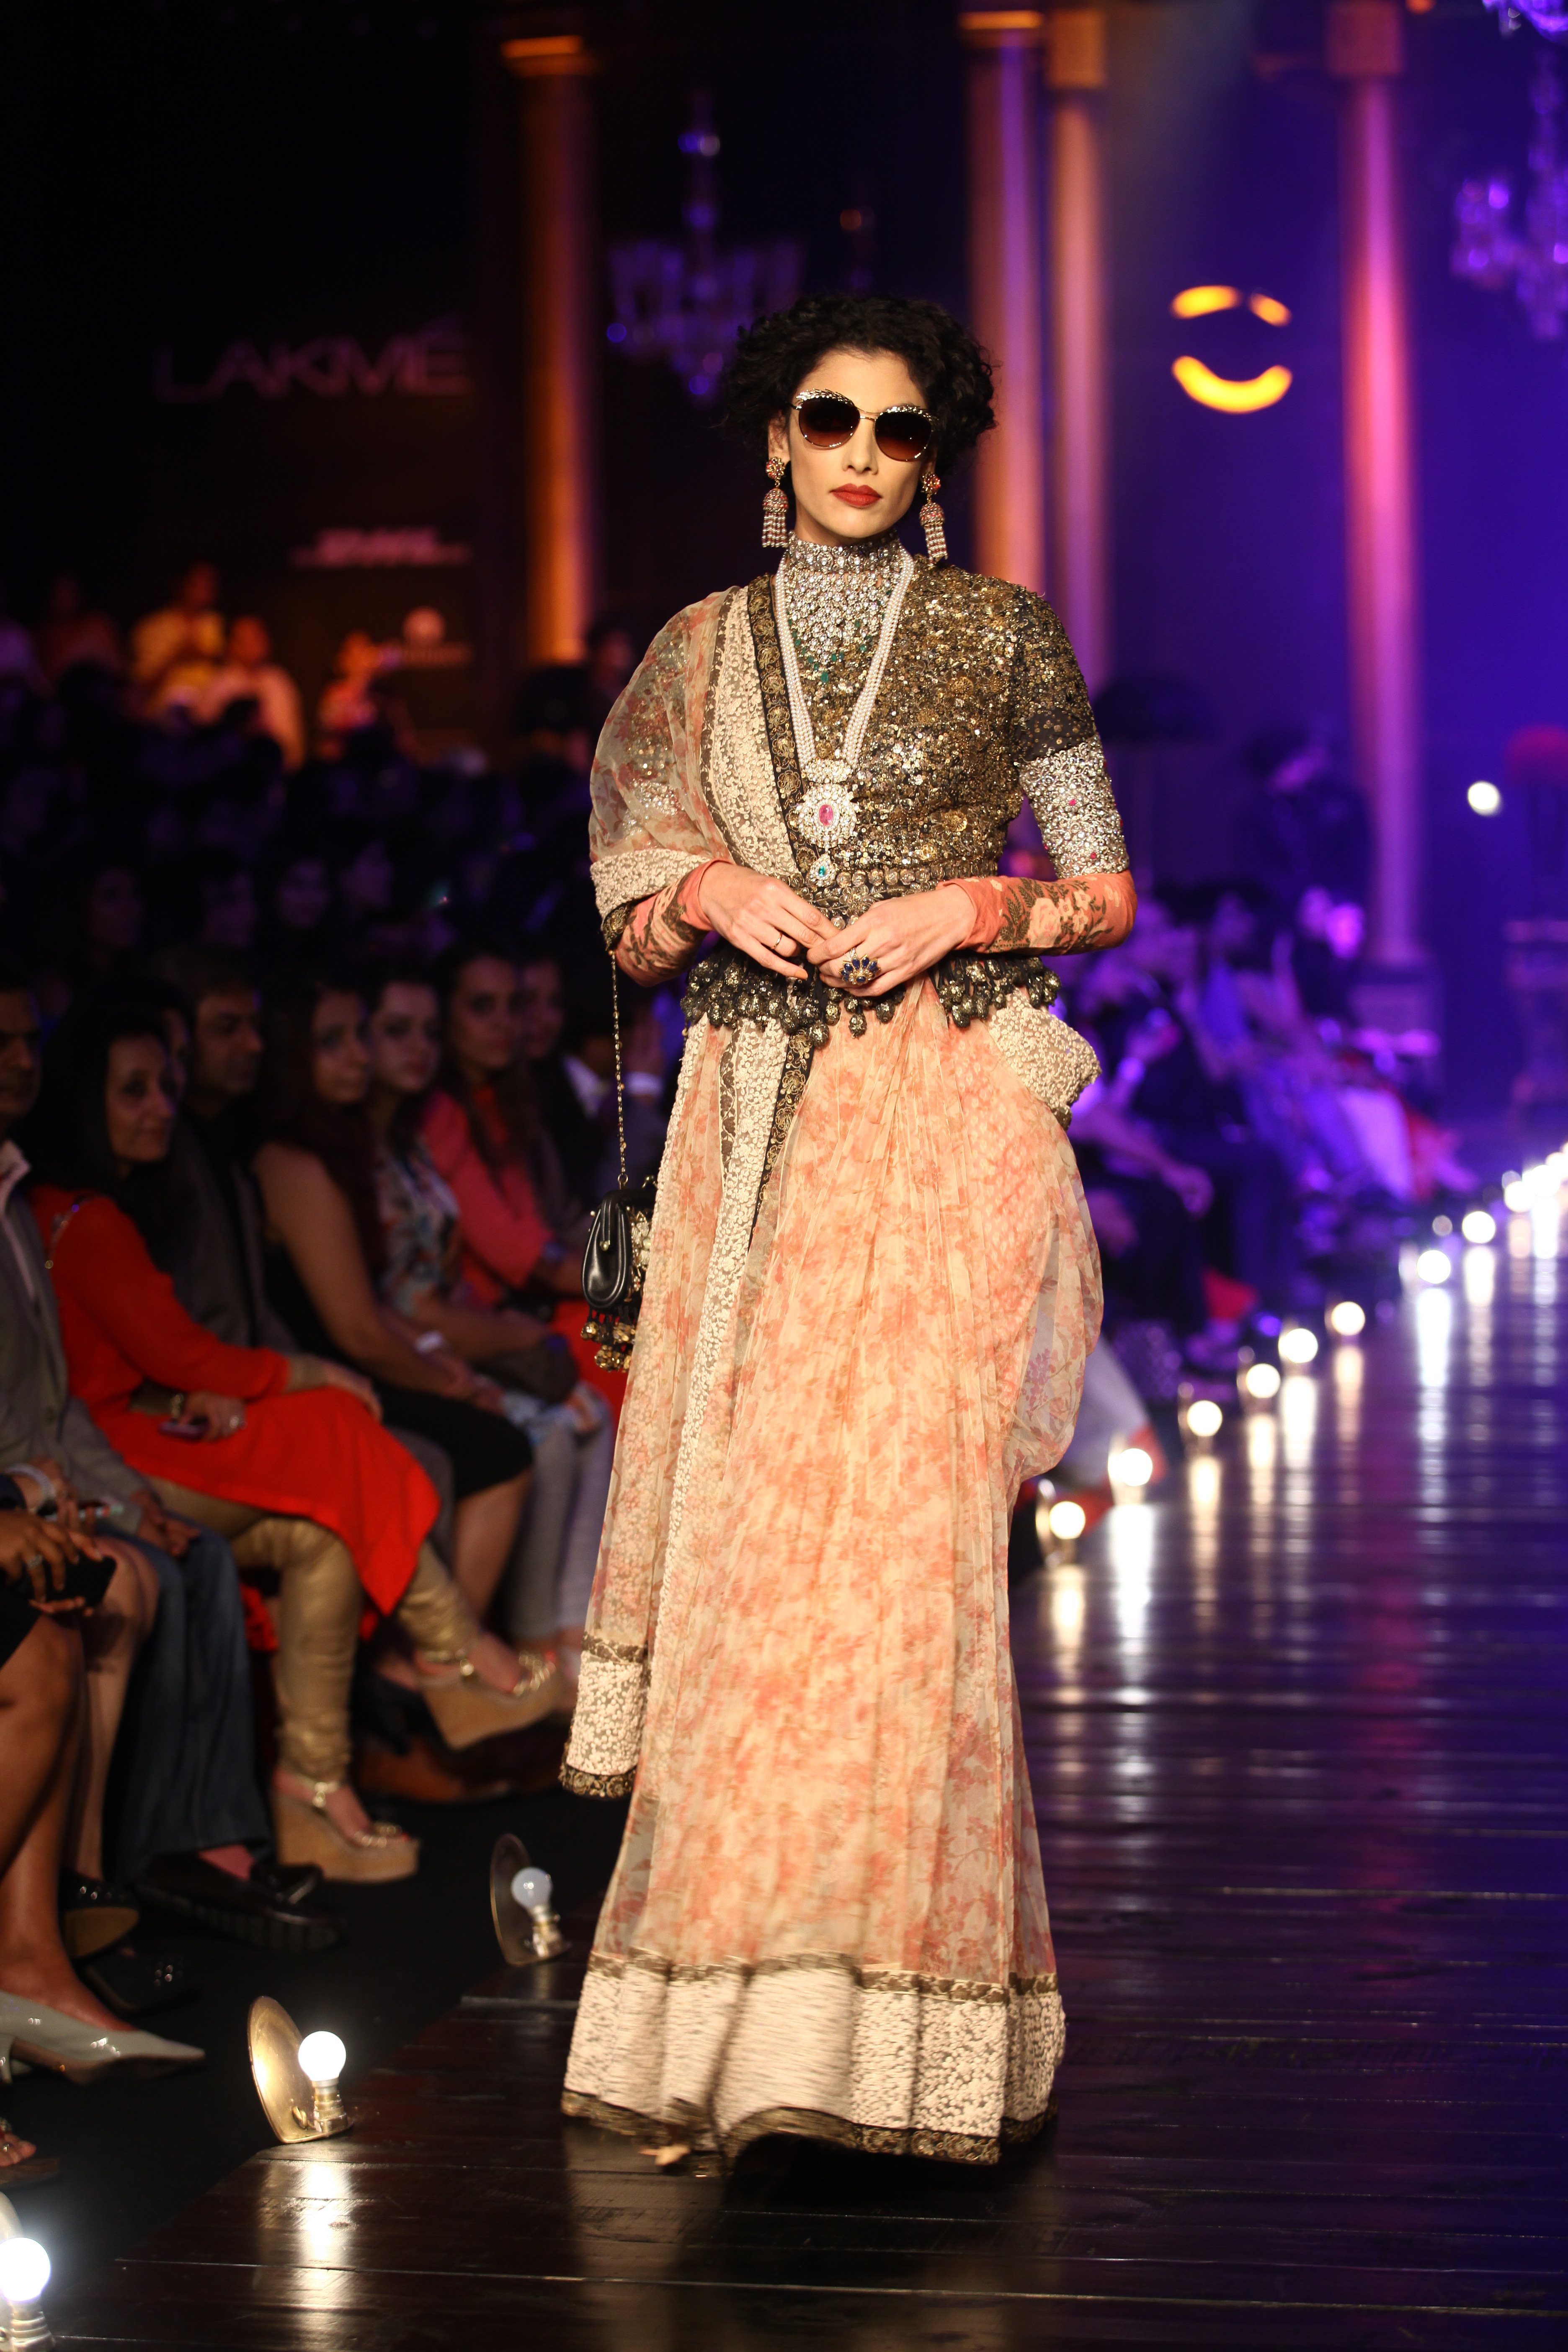 Lakmé Fashion Week Winter/Festive 2013 Ended With A ... Sabyasachi Lakme Fashion Week Winter Festive 2013